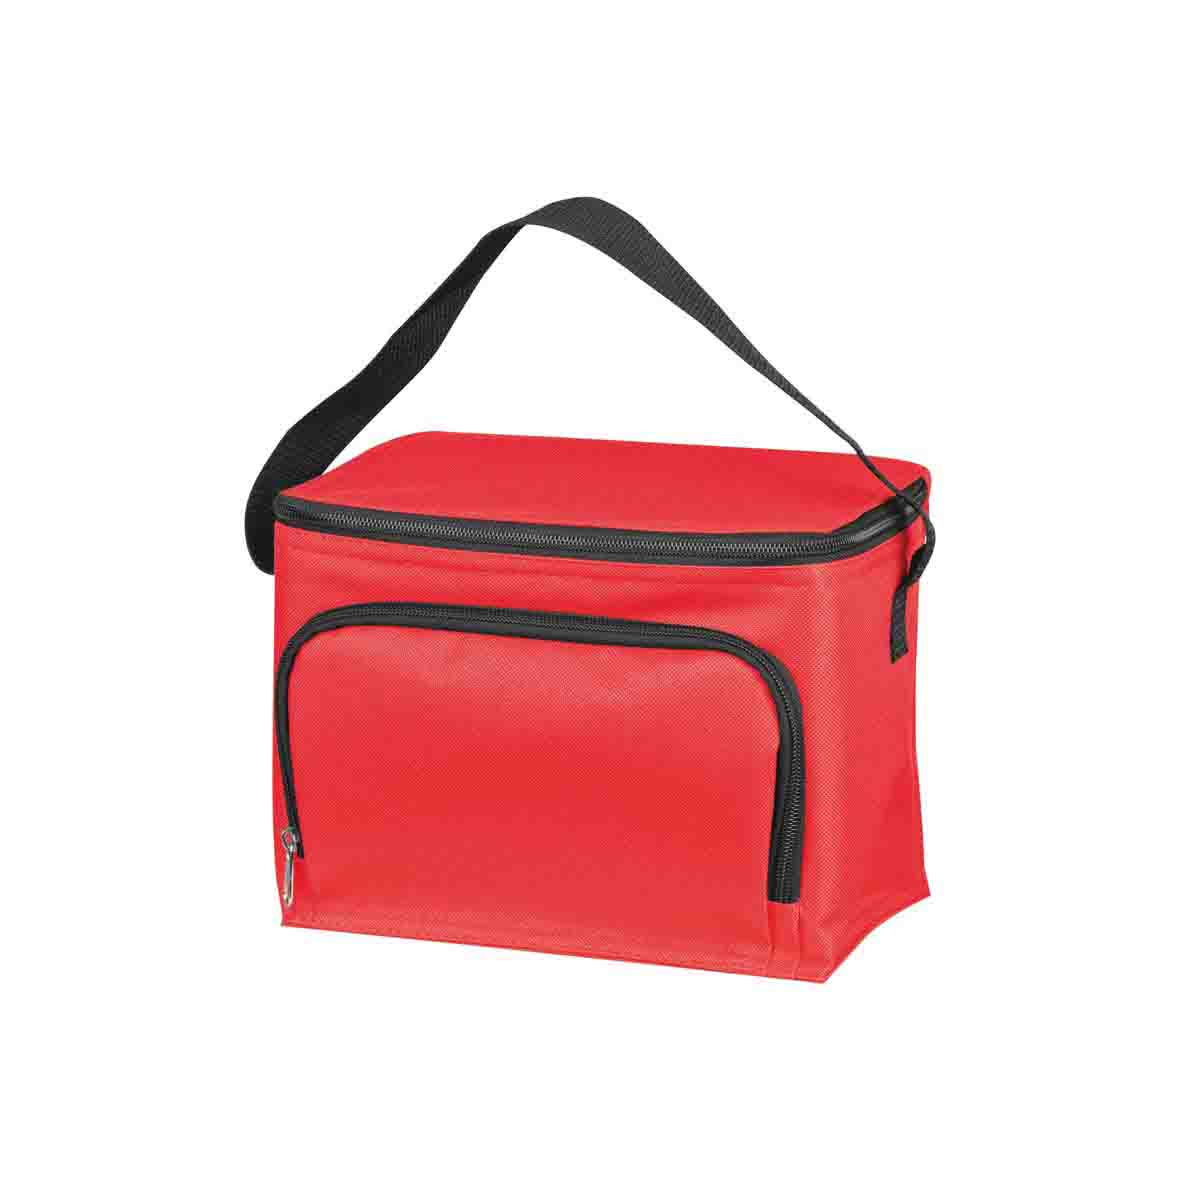 210D polyester cooler bag with a zippered front compartment and nylon carrying straps - Red mac-6832105